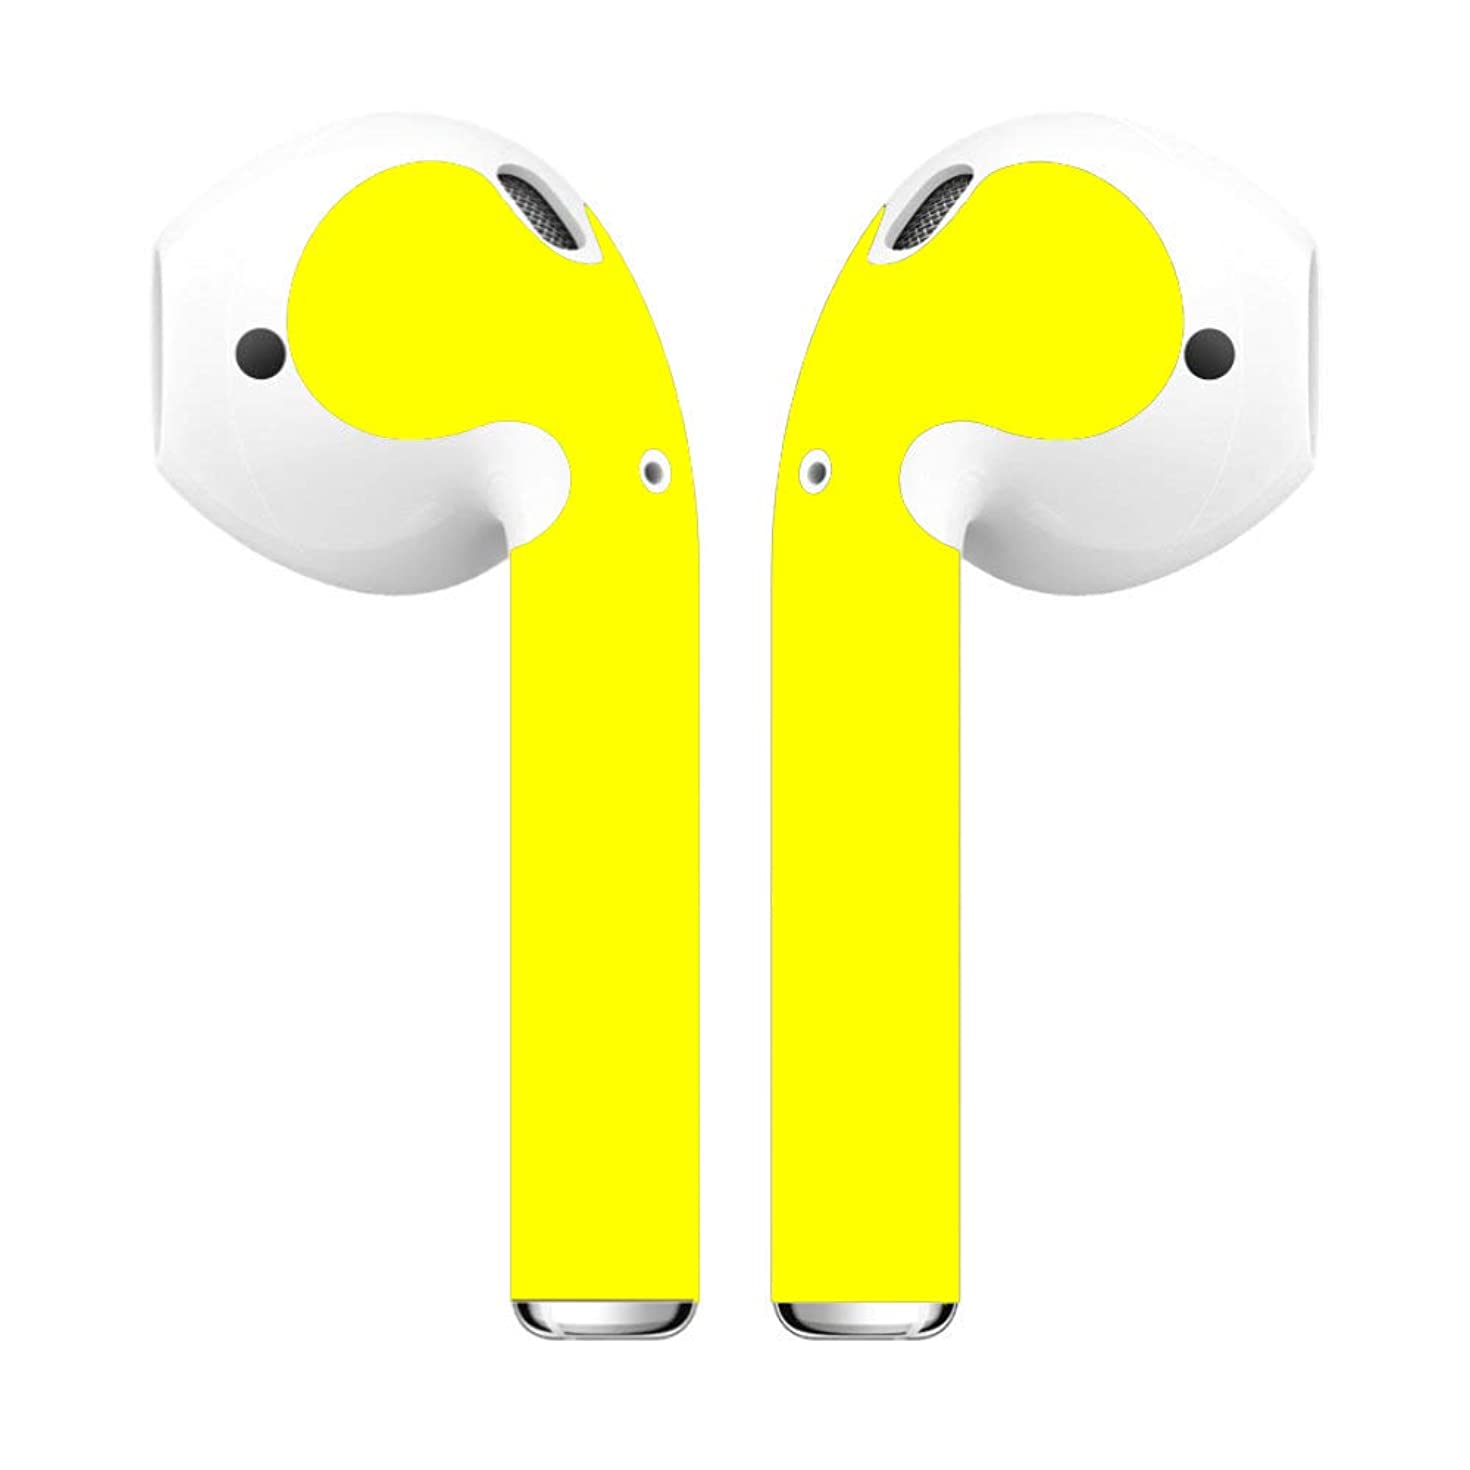 AirPod Skins, Wraps & Covers - Premium Accessories for Style, Customization & Protection - Compatible with AirPods 1 and 2